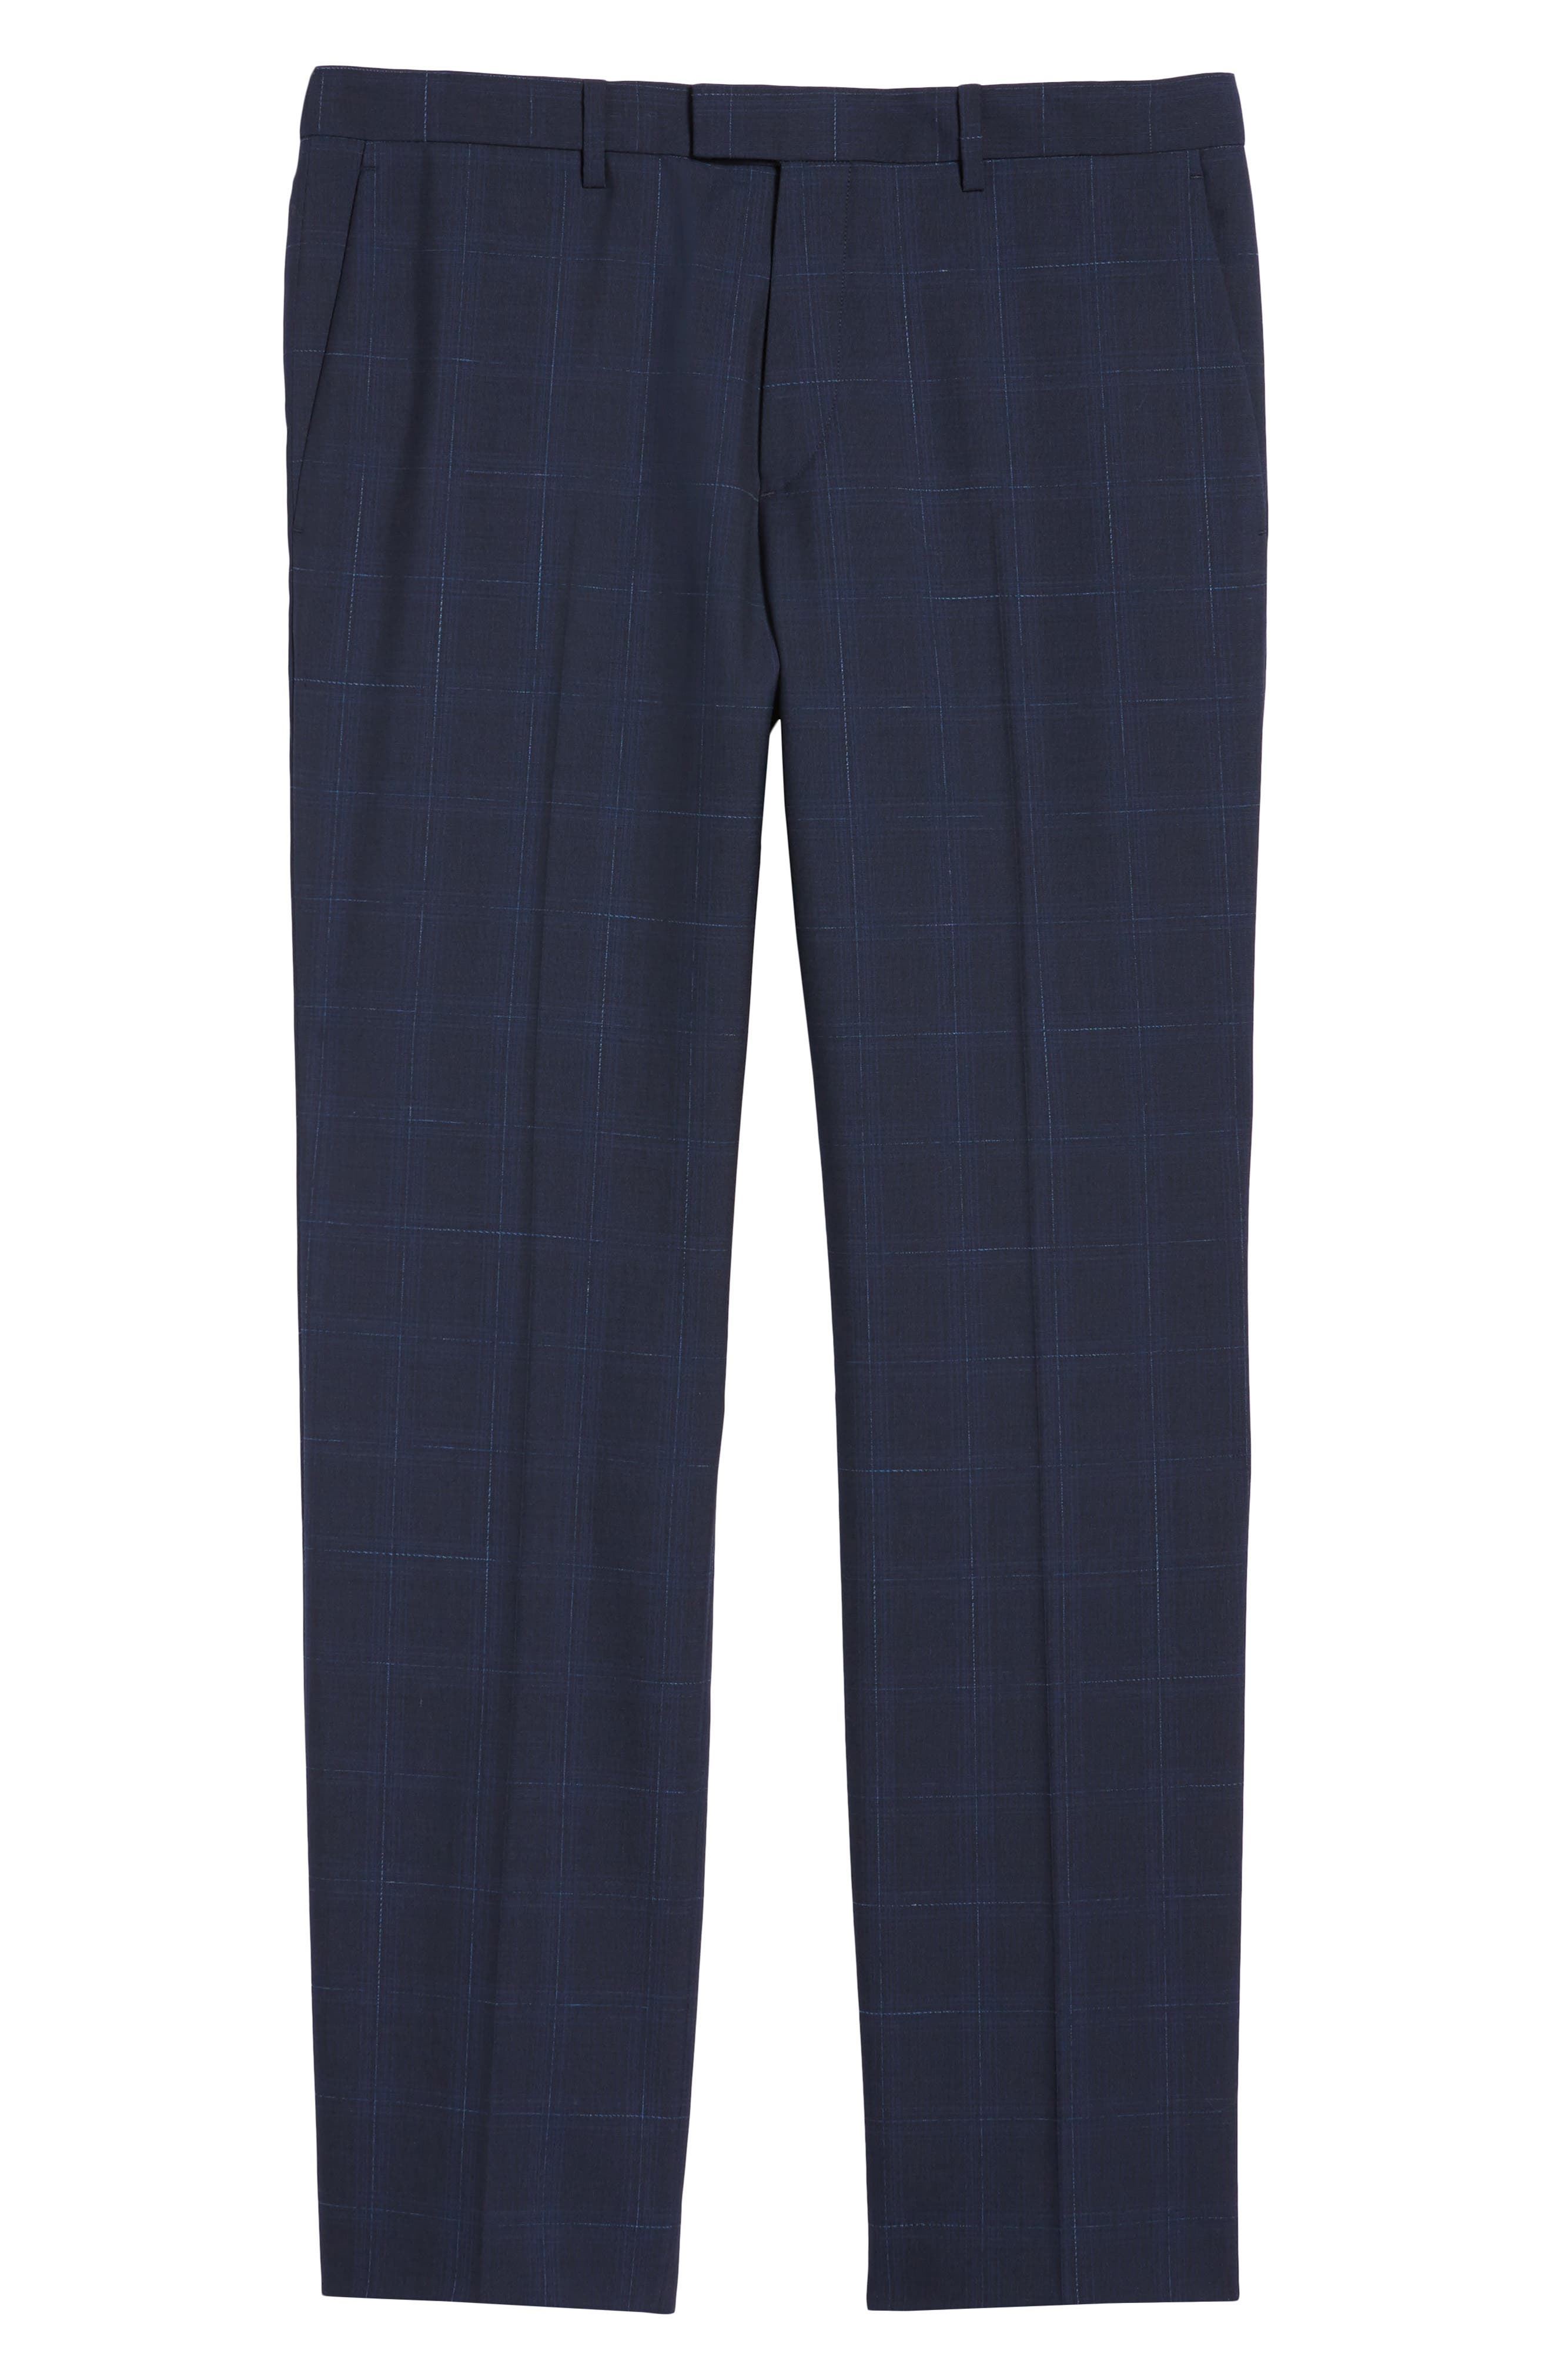 Marlo Flat Front Plaid Wool Trousers,                             Alternate thumbnail 6, color,                             Eclipse